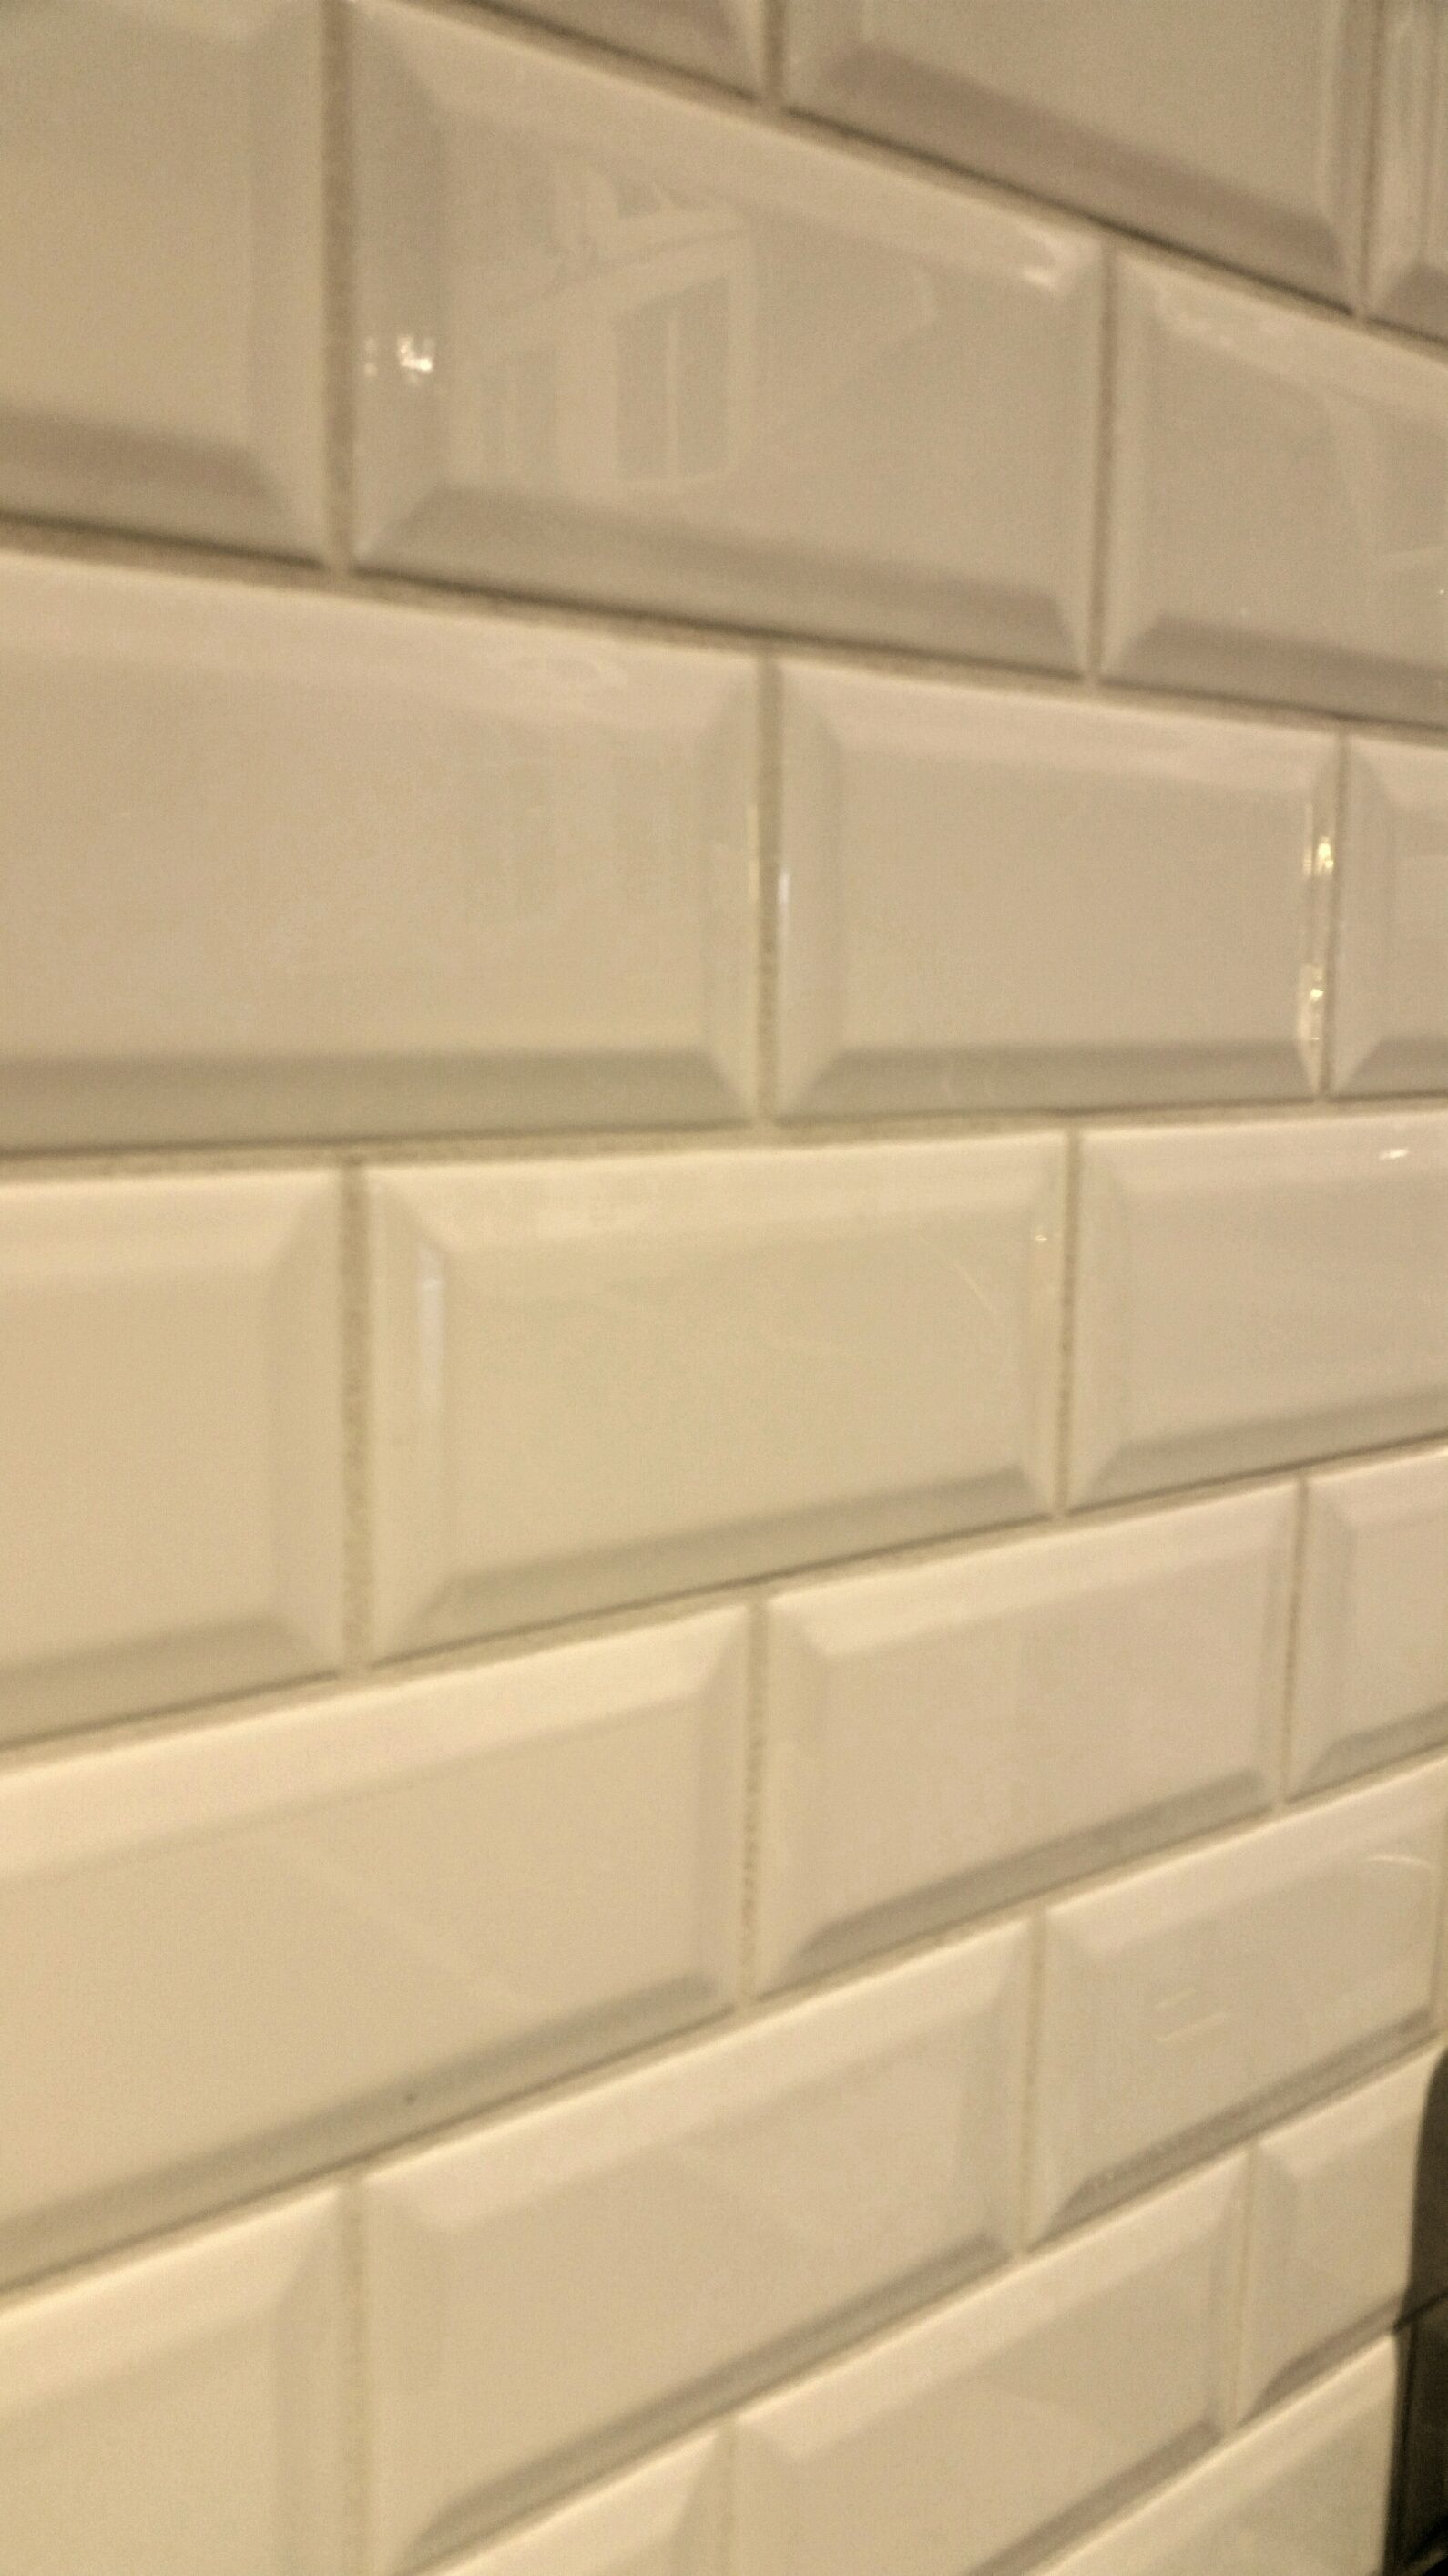 7 creative subway tile backsplash ideas for your kitchen subway it s jewelry for your kitchen beveled subway backsplash tile http www